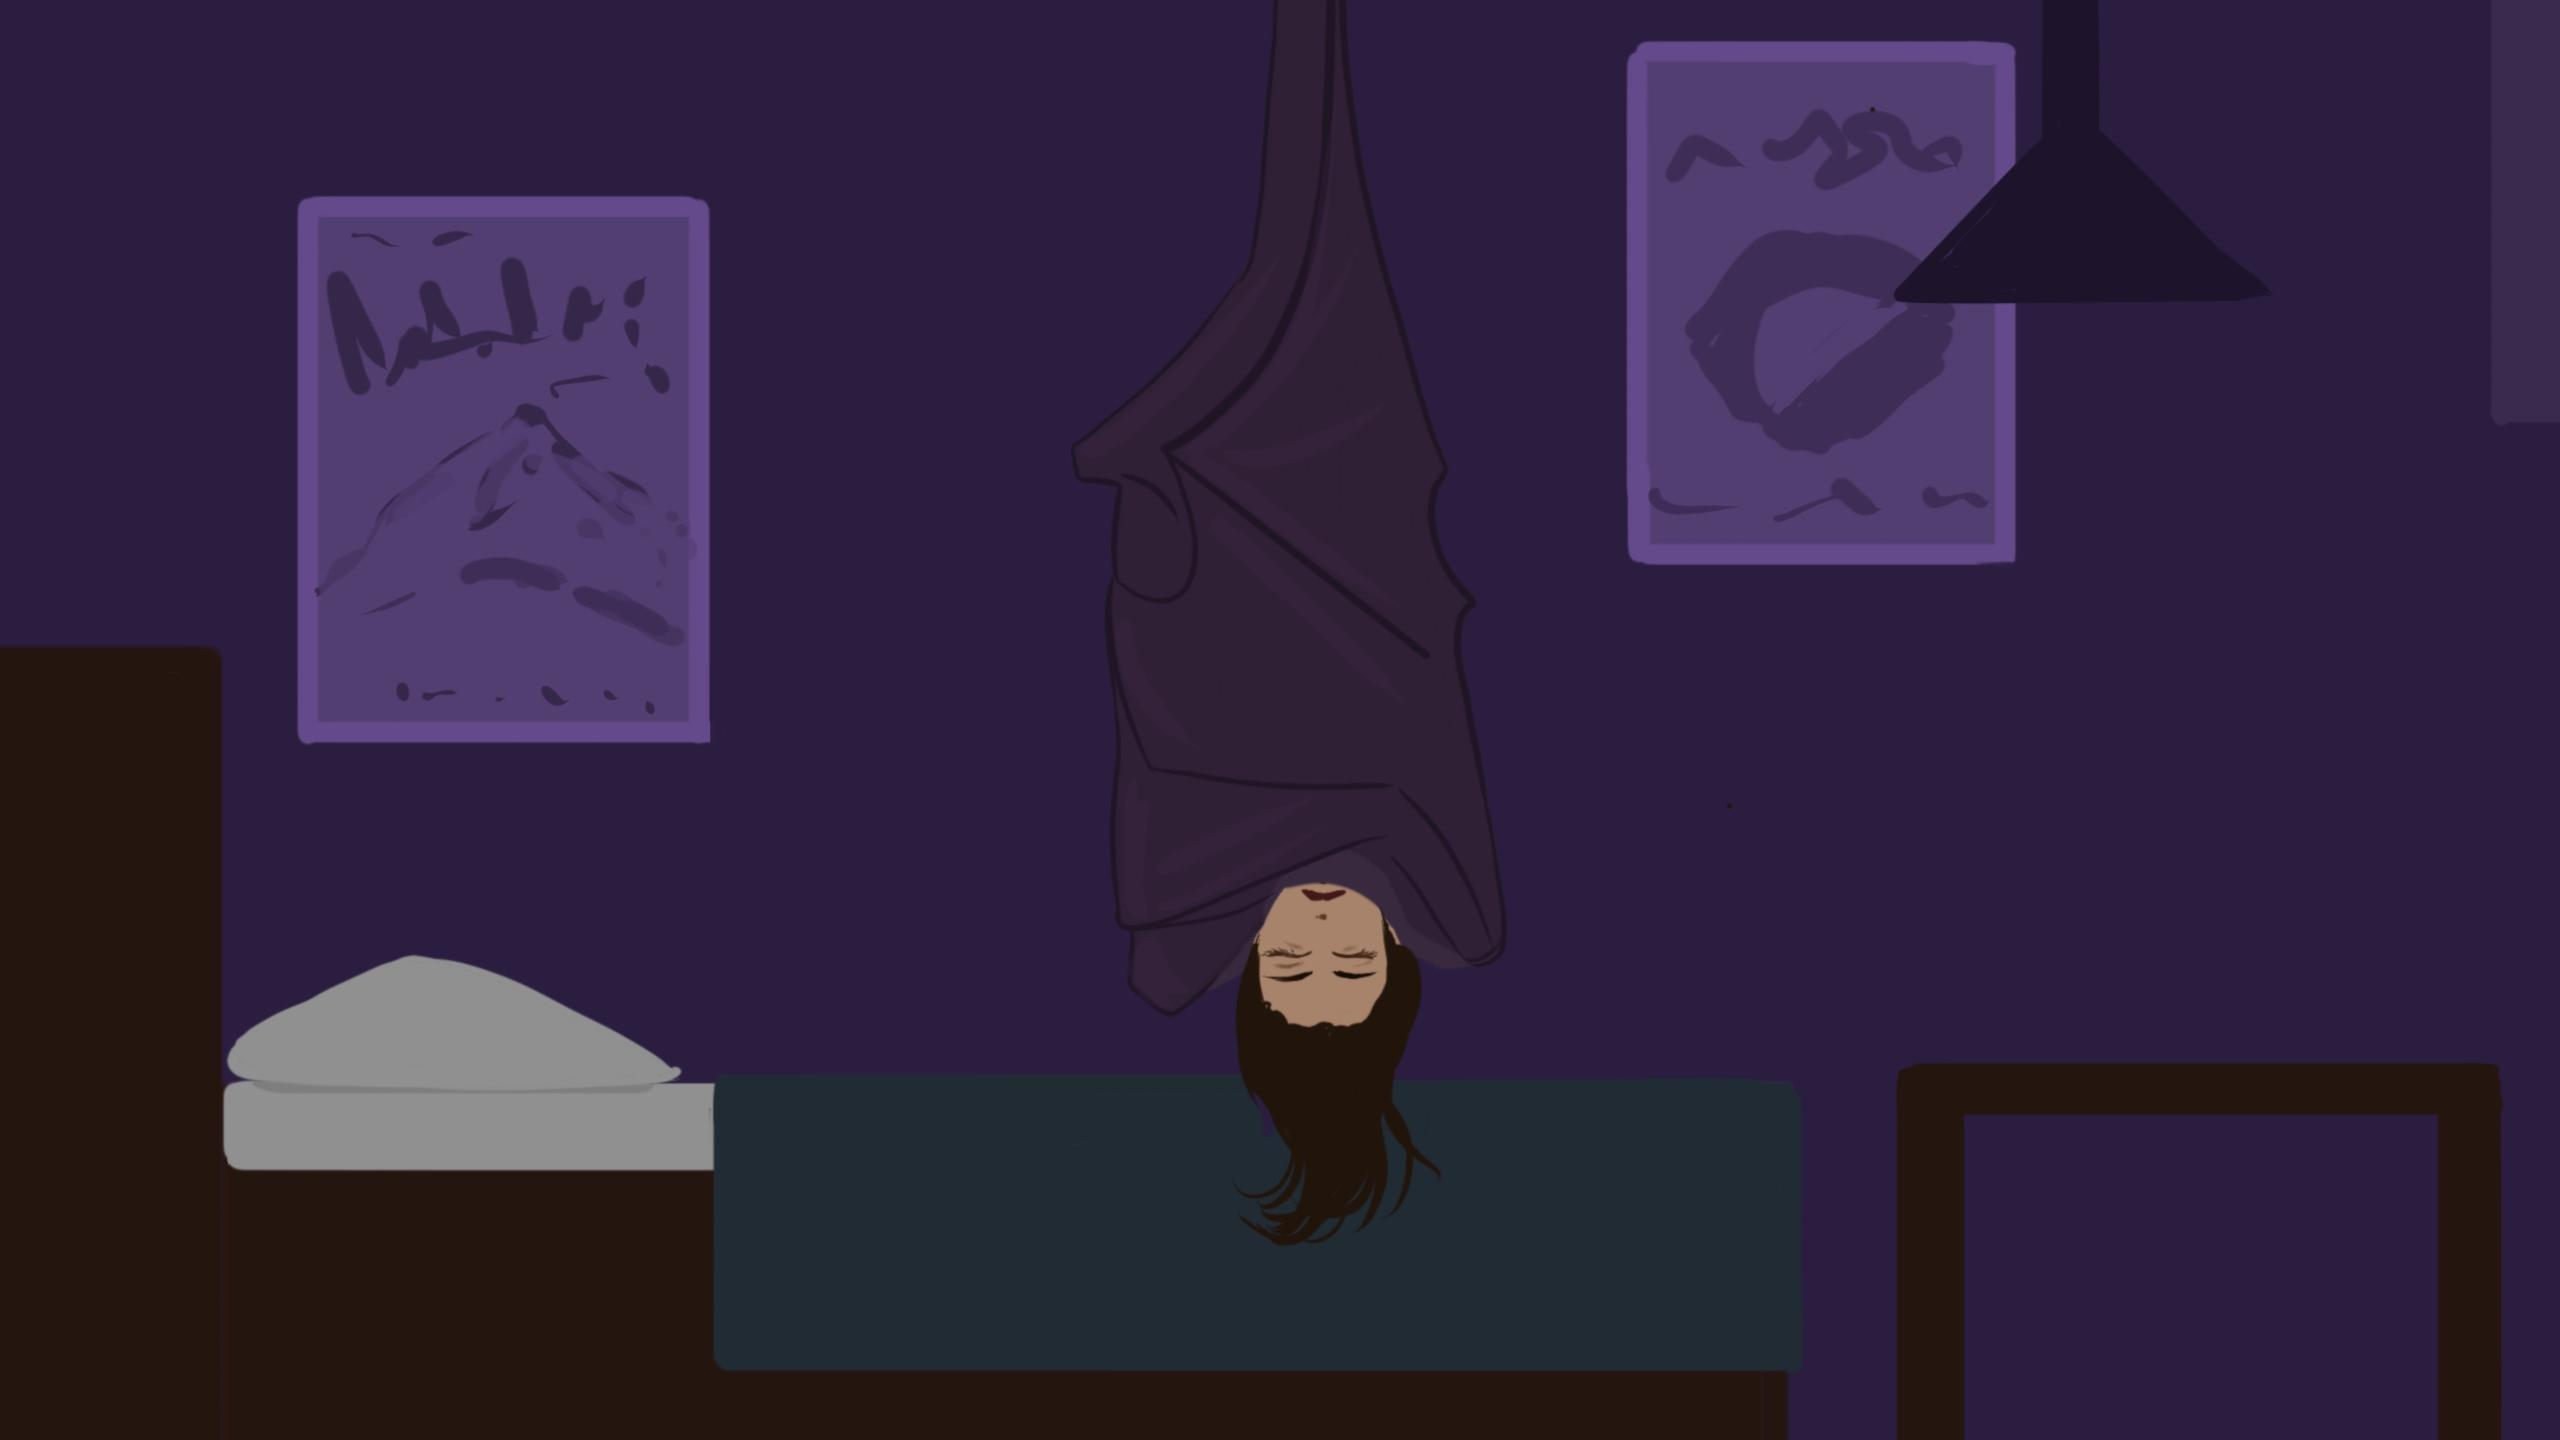 A bat with a human face hanging upside down over their bed.